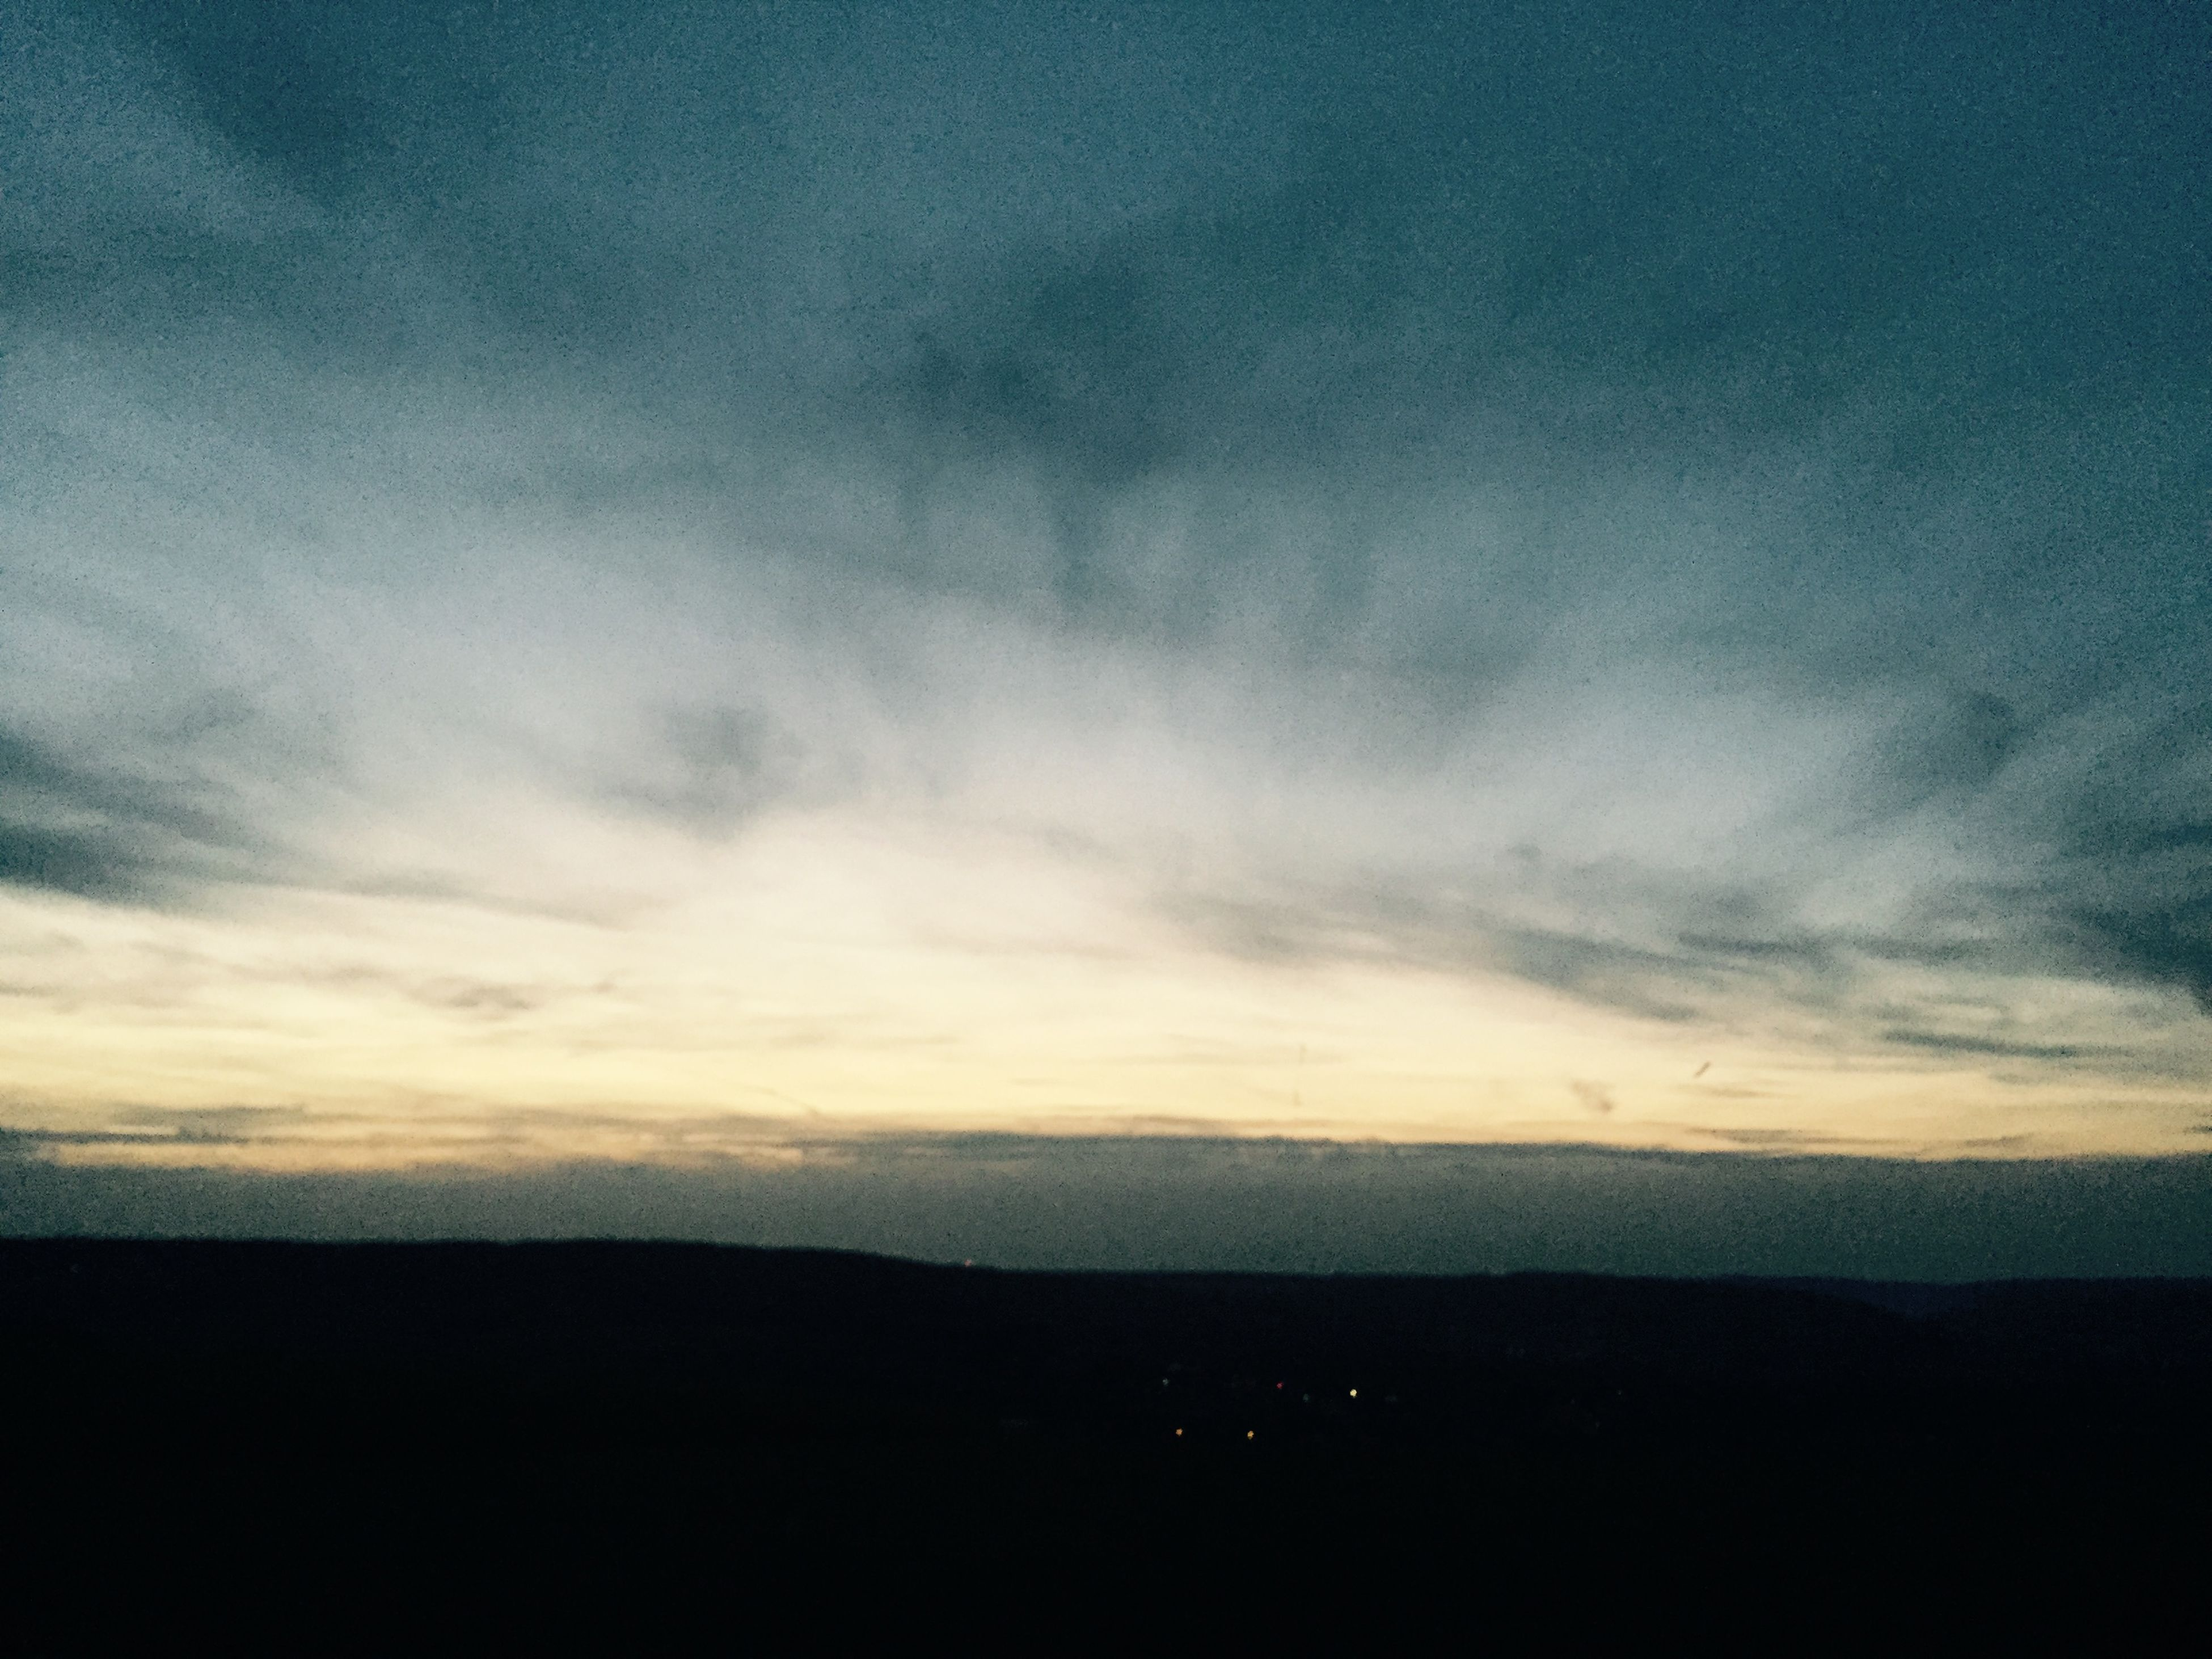 tranquil scene, scenics, tranquility, sunset, beauty in nature, sky, silhouette, landscape, nature, idyllic, cloud - sky, horizon over land, mountain, cloud, dusk, dark, non-urban scene, remote, copy space, outdoors